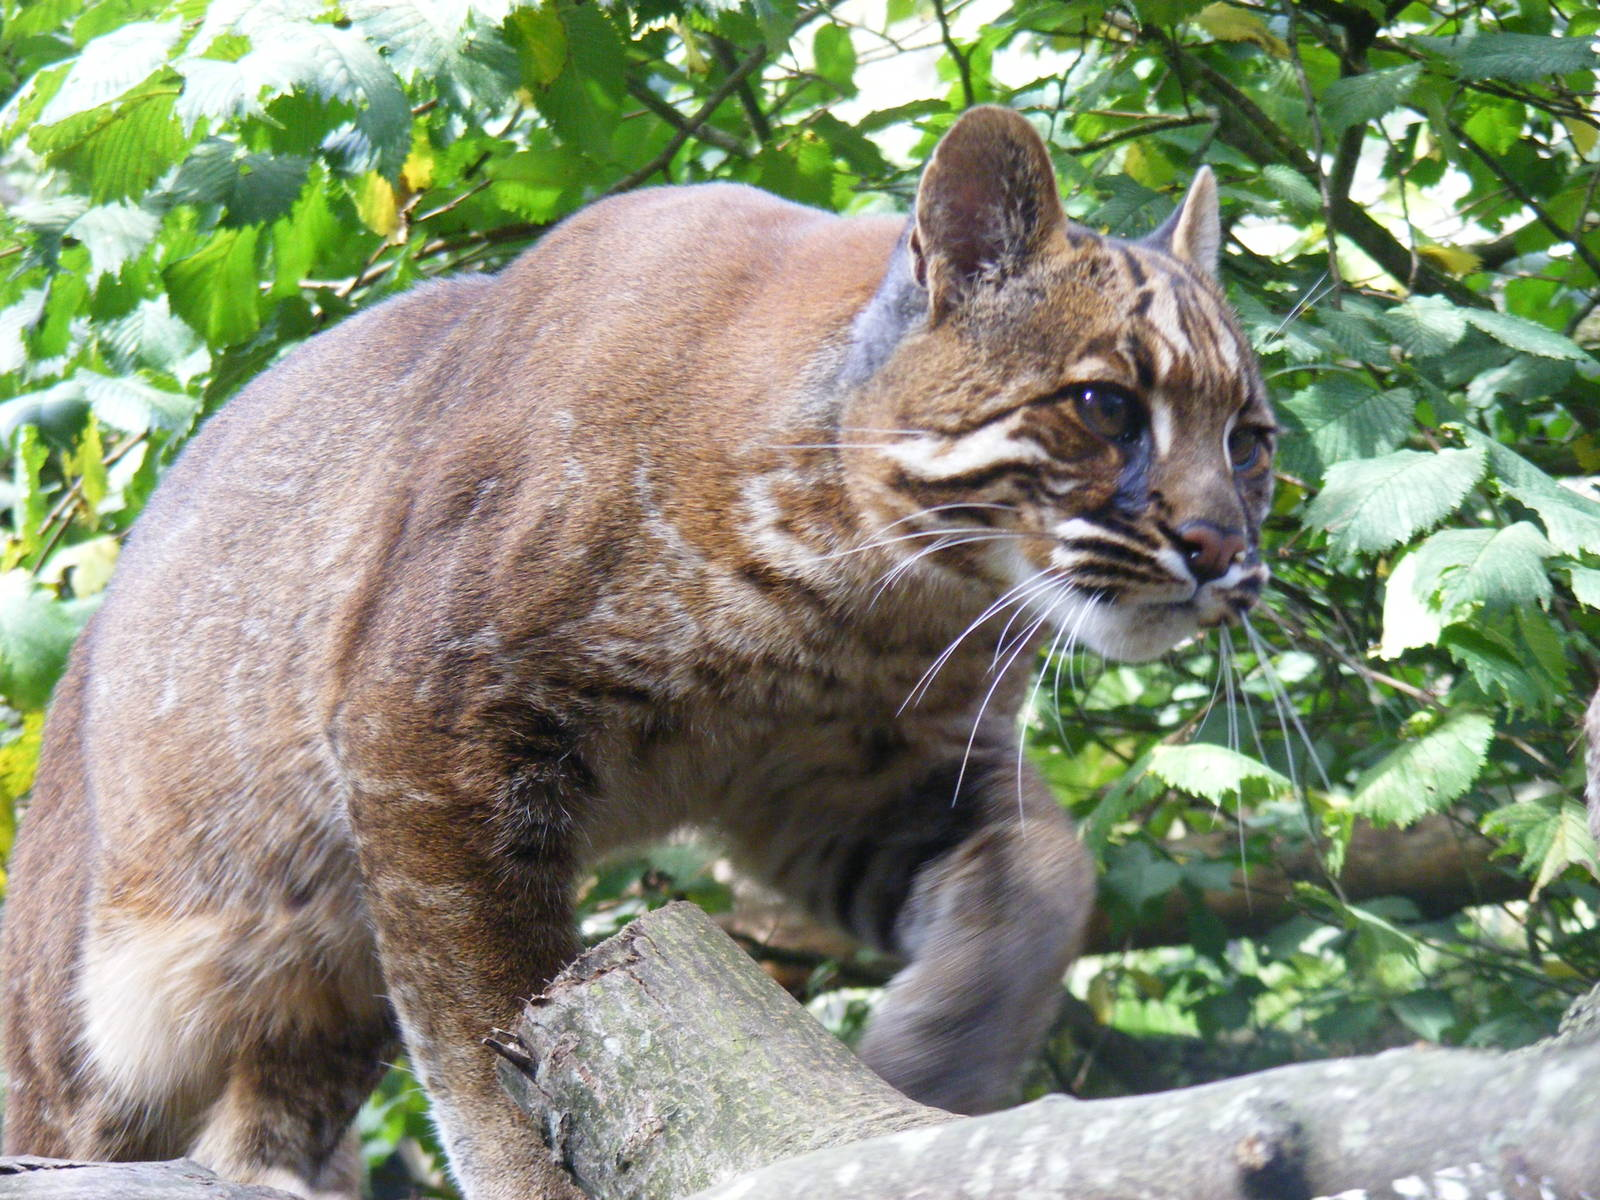 What Big Cats Does Edinburgh Zoo Have